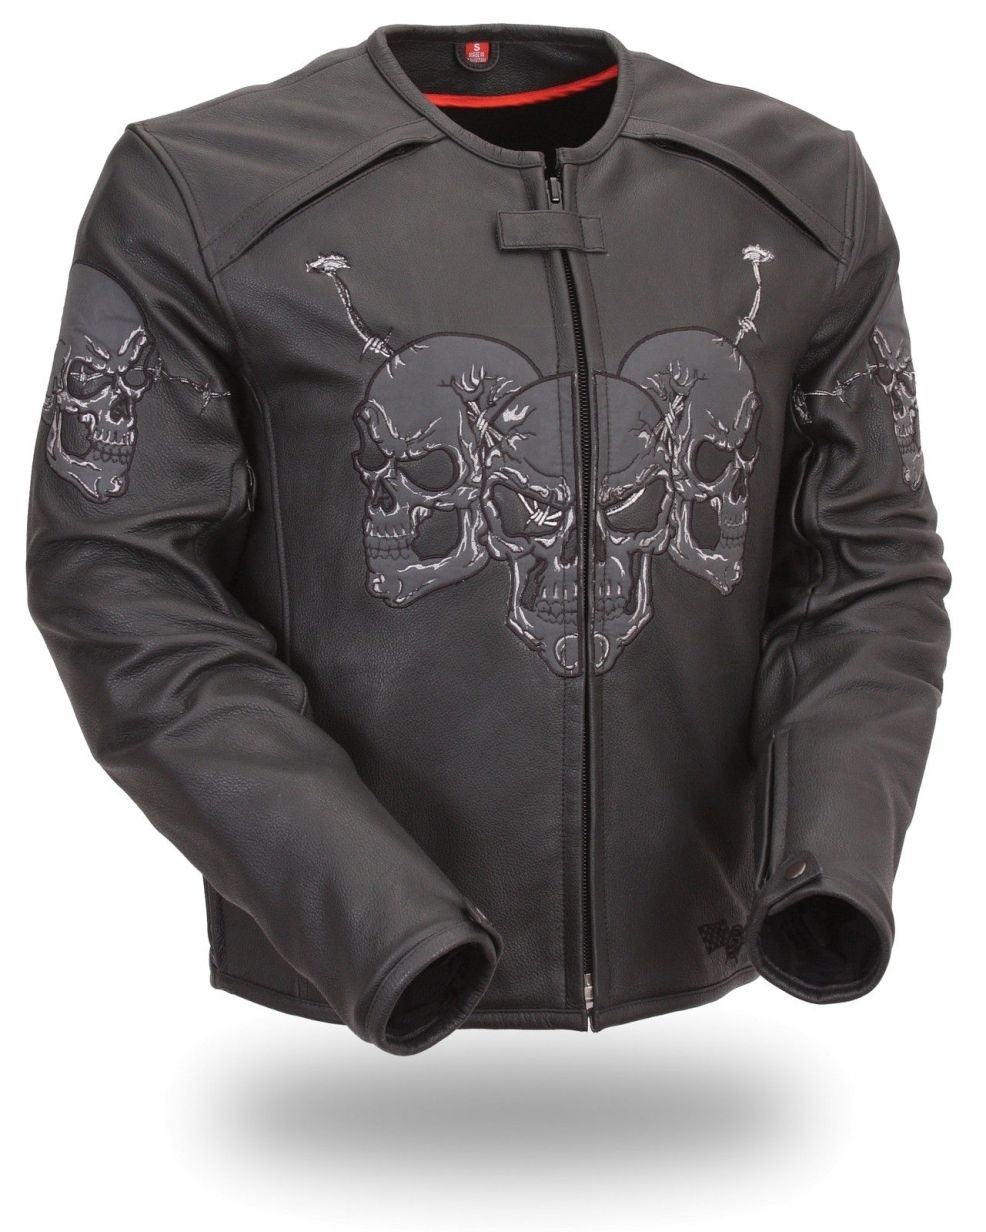 HMB-793A LEATHER JACKET BLACK WITH SKULL STYLE